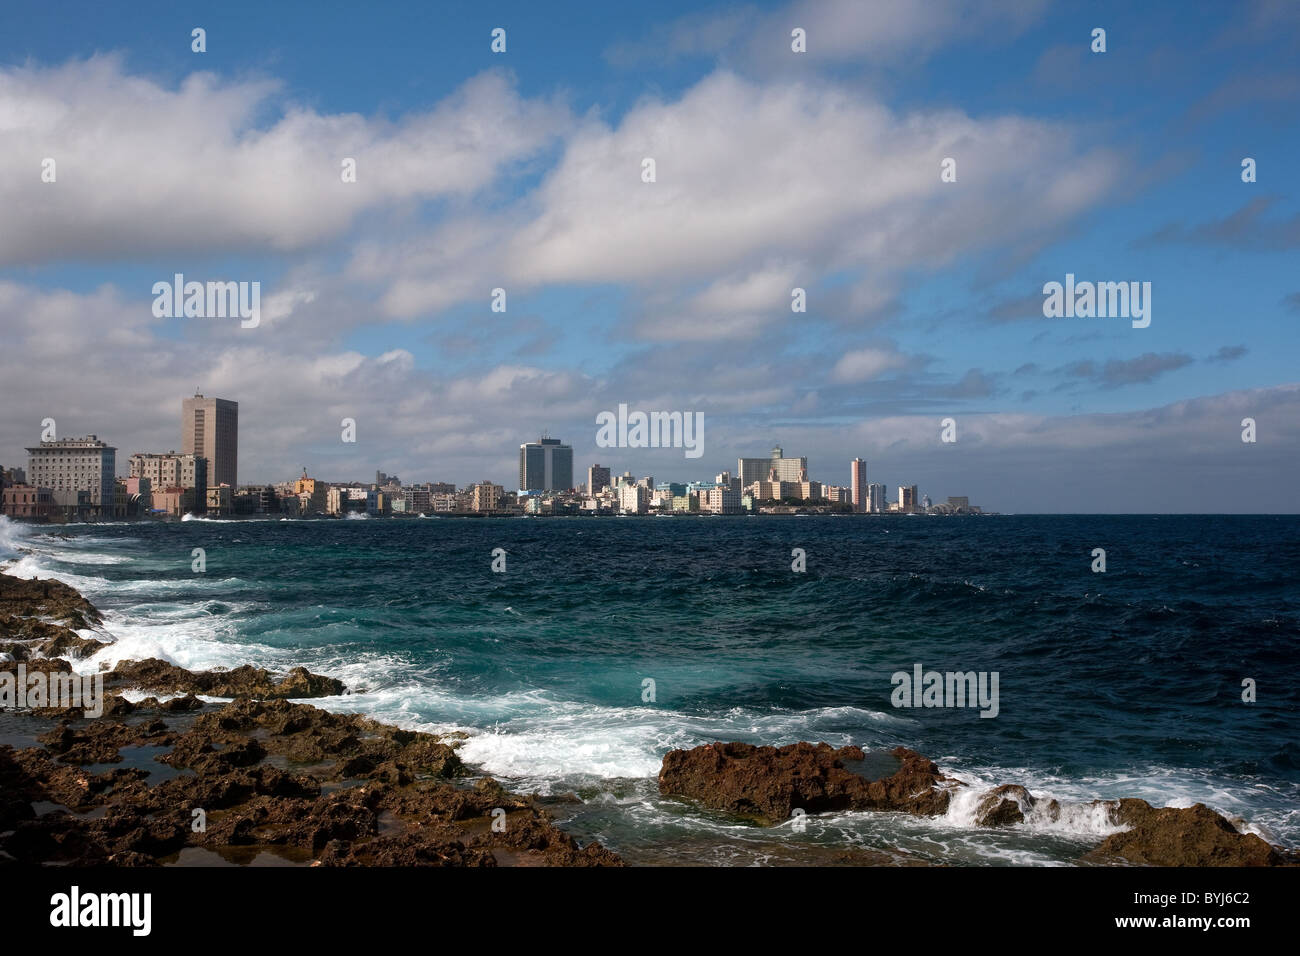 Landscape photograph of the Vedado area with tall buildings and skyscrapers by the sea shoot on a bright day with - Stock Image